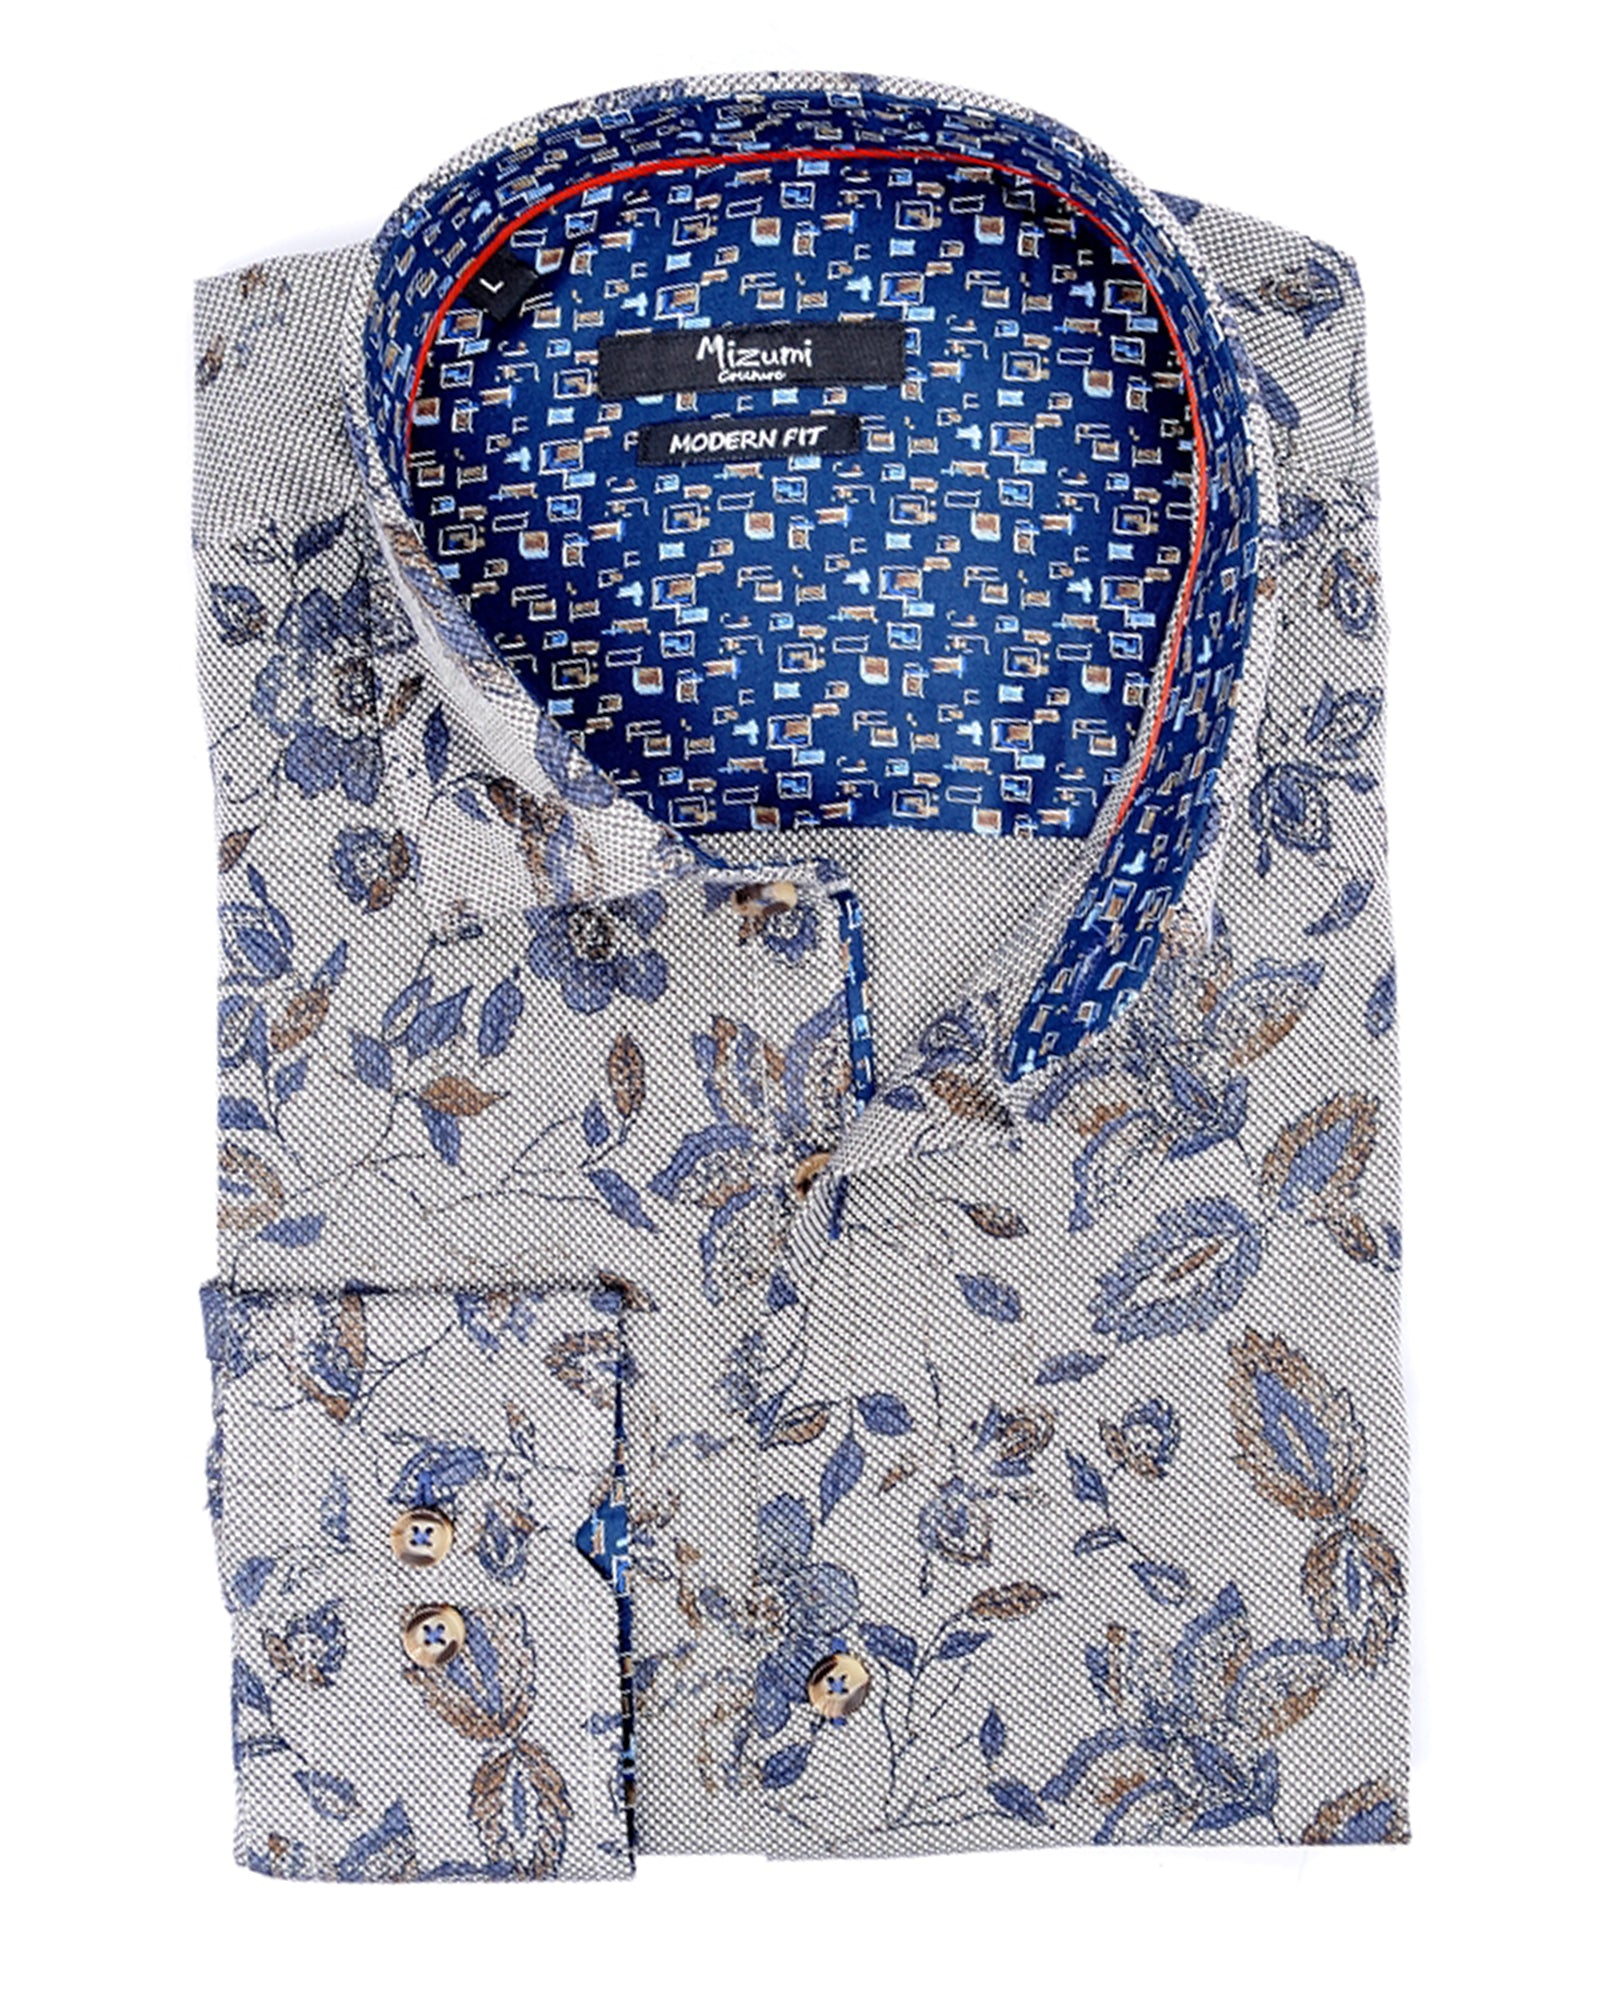 Indigo & Taupe Floral Sport Shirt - Rainwater's Men's Clothing and Tuxedo Rental